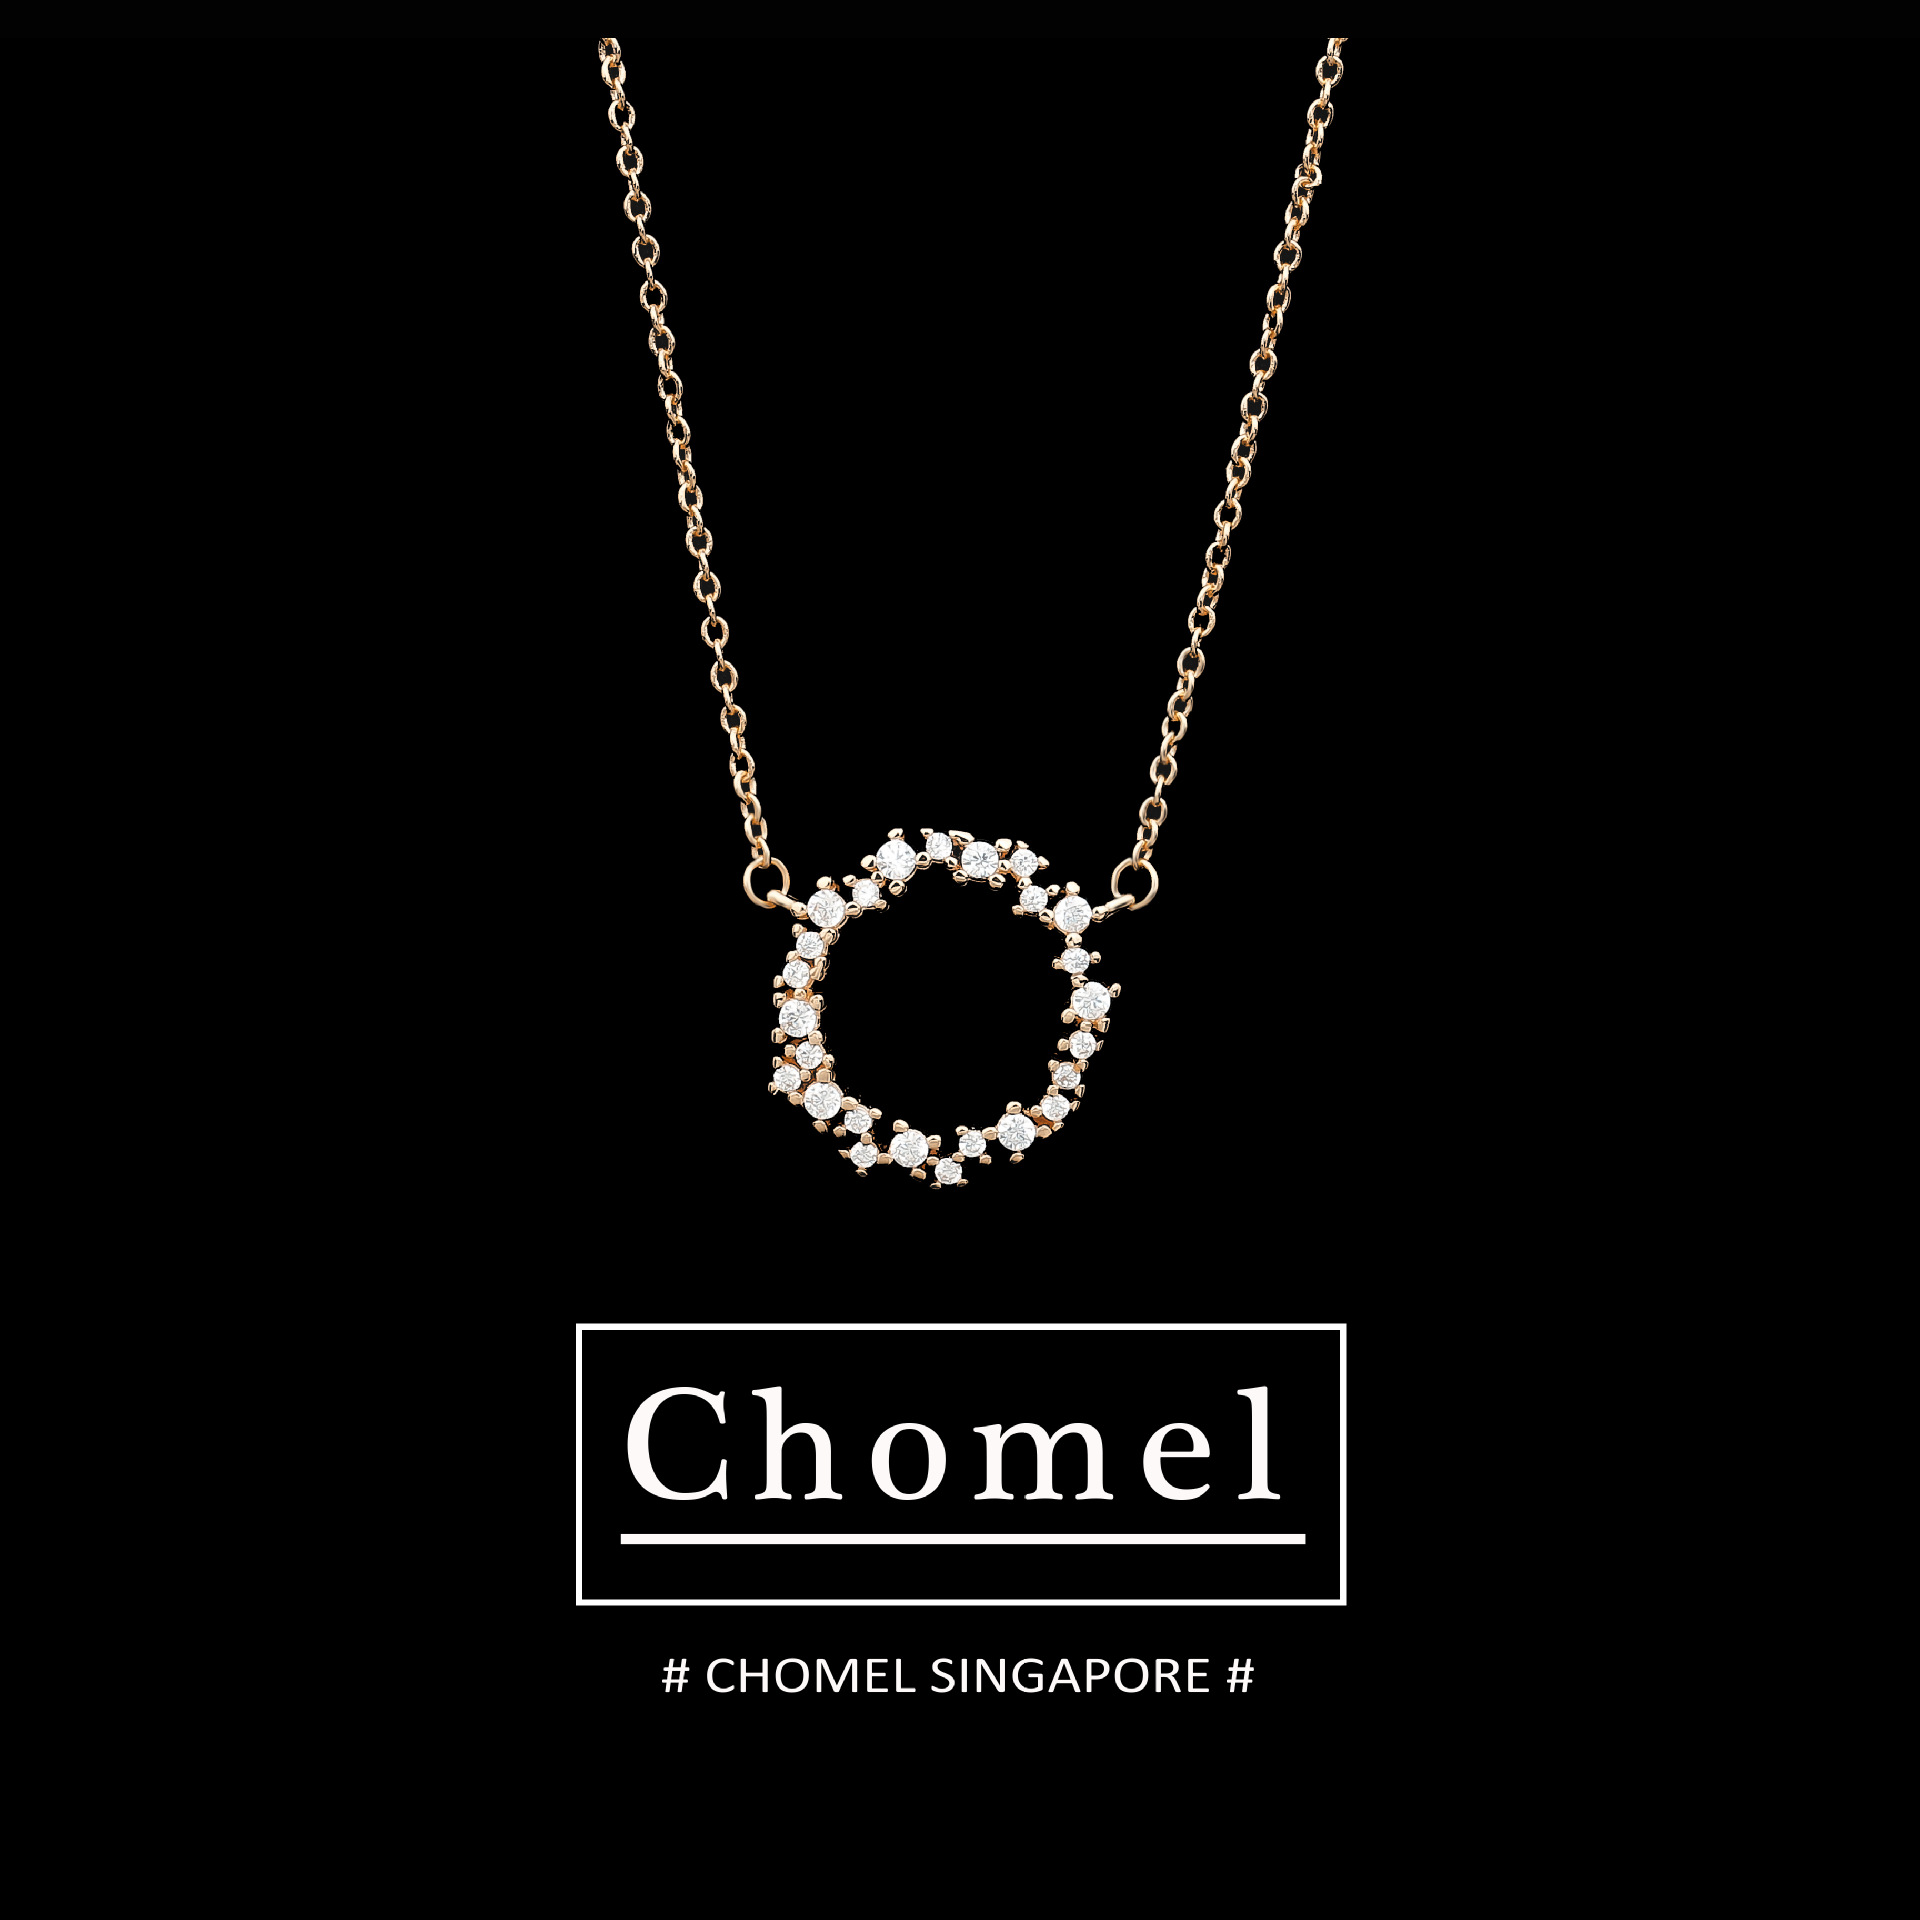 Singapore chomel necklace, womens versatile, fashionable and bright, round diamond, fresh student style, creative design of clavicle chain